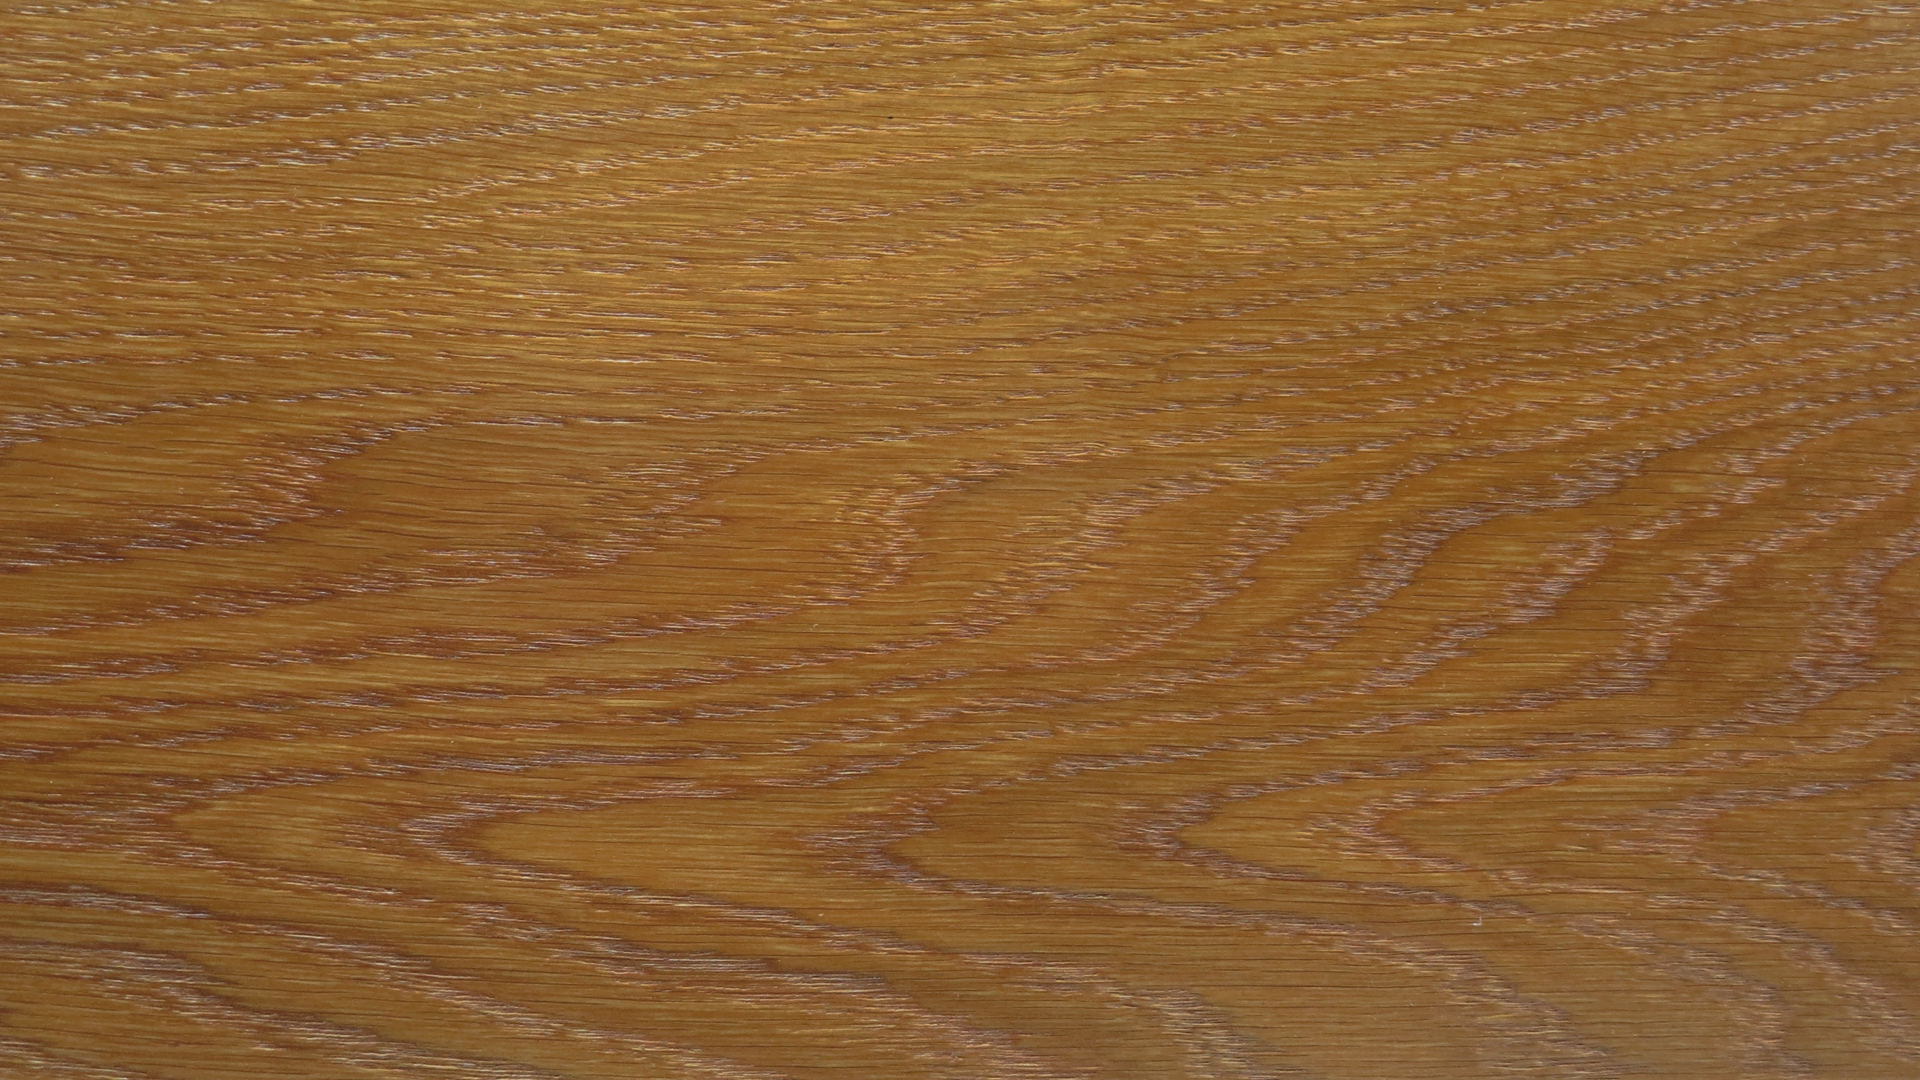 colorwood 01_57b7334c8fcc9